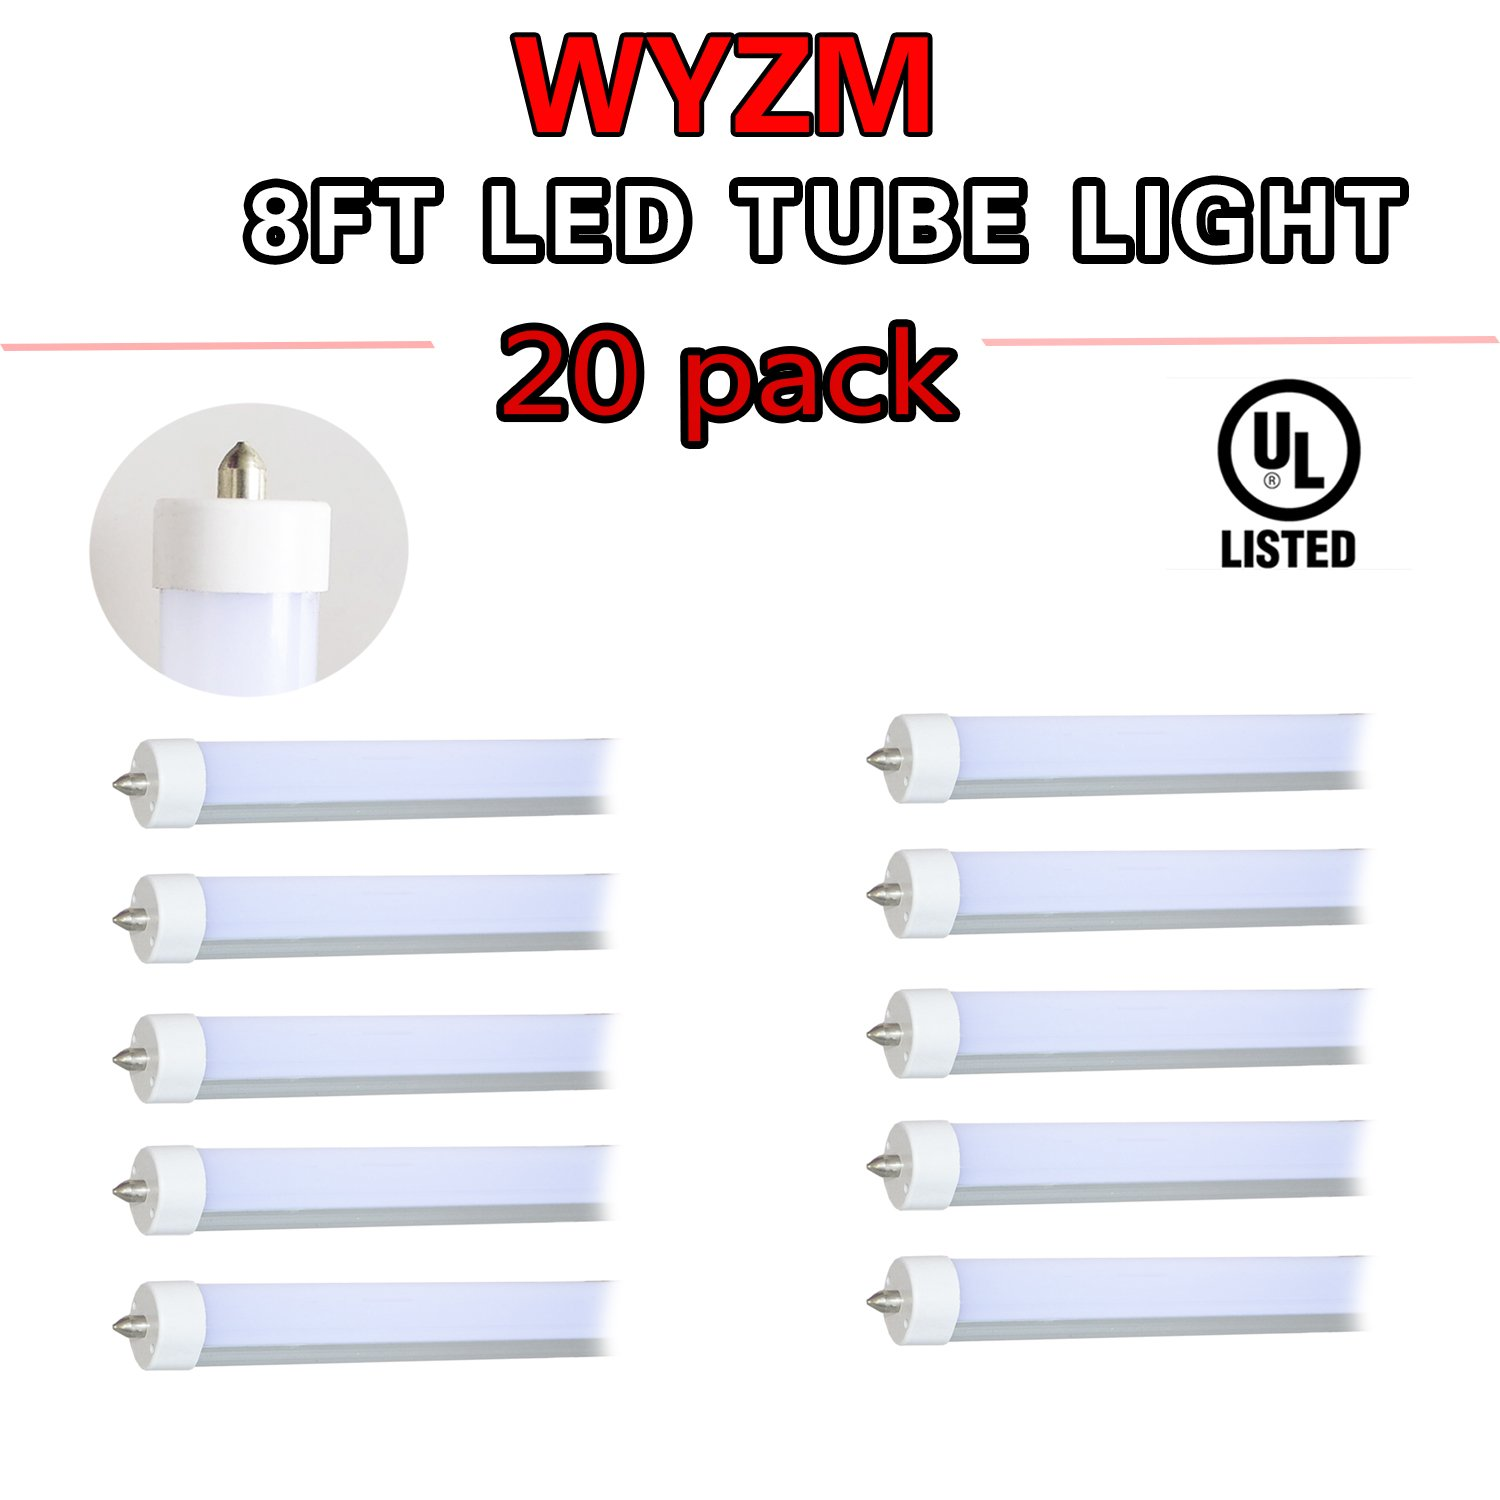 WYZM 20-Pack 96'' 8ft 40w T12 LED Tube Double-end Power 110V 277V AC F96T12 / DX / ALTO 75 Watt T12 Linear Fluorescent Tube Replacement (20)